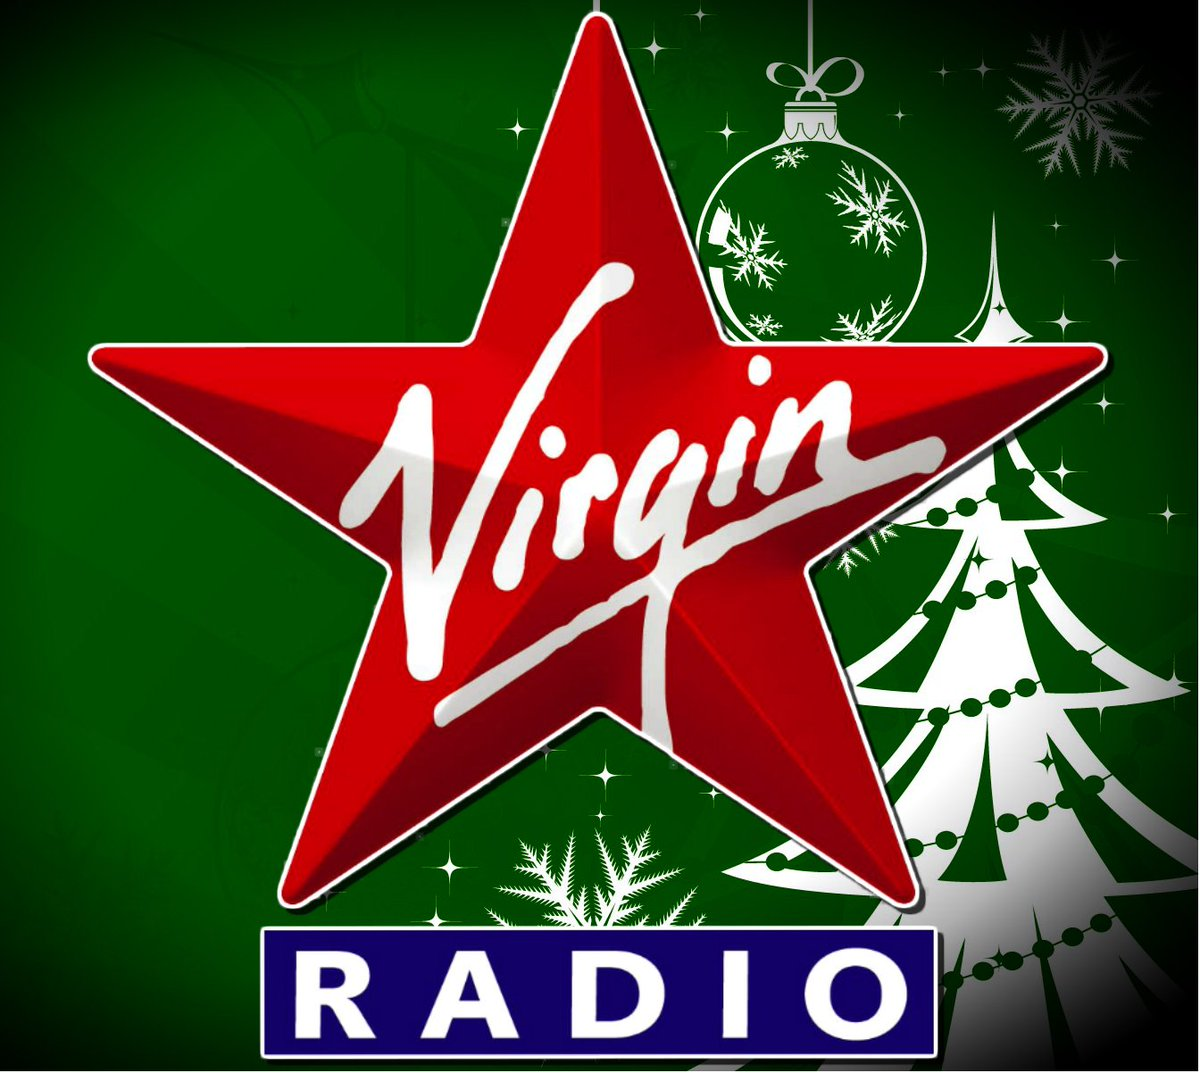 XMAS IN ROCK, canzone di Natale a tutto rock di VIRGIN RADIO